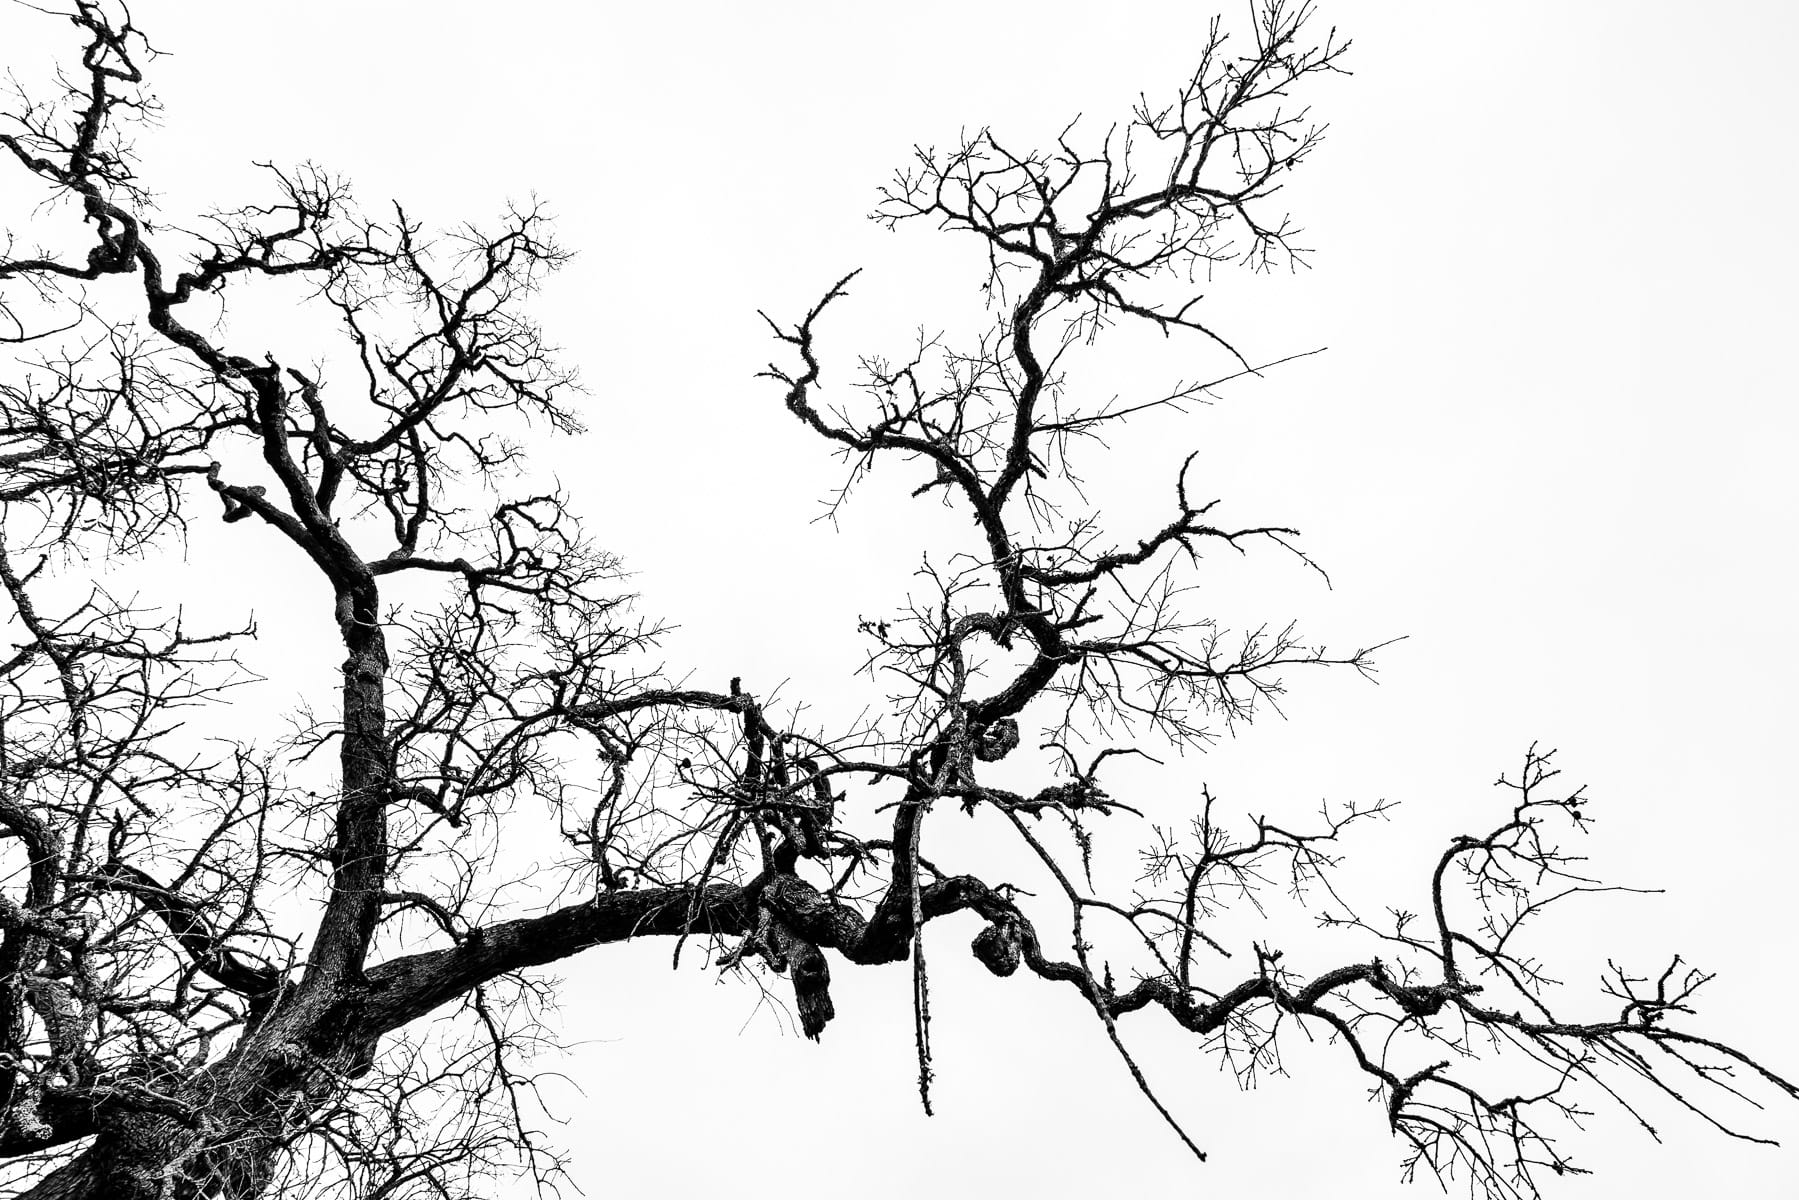 Tree branches crackle across the overcast sky at Fort Parker State Park, Texas.